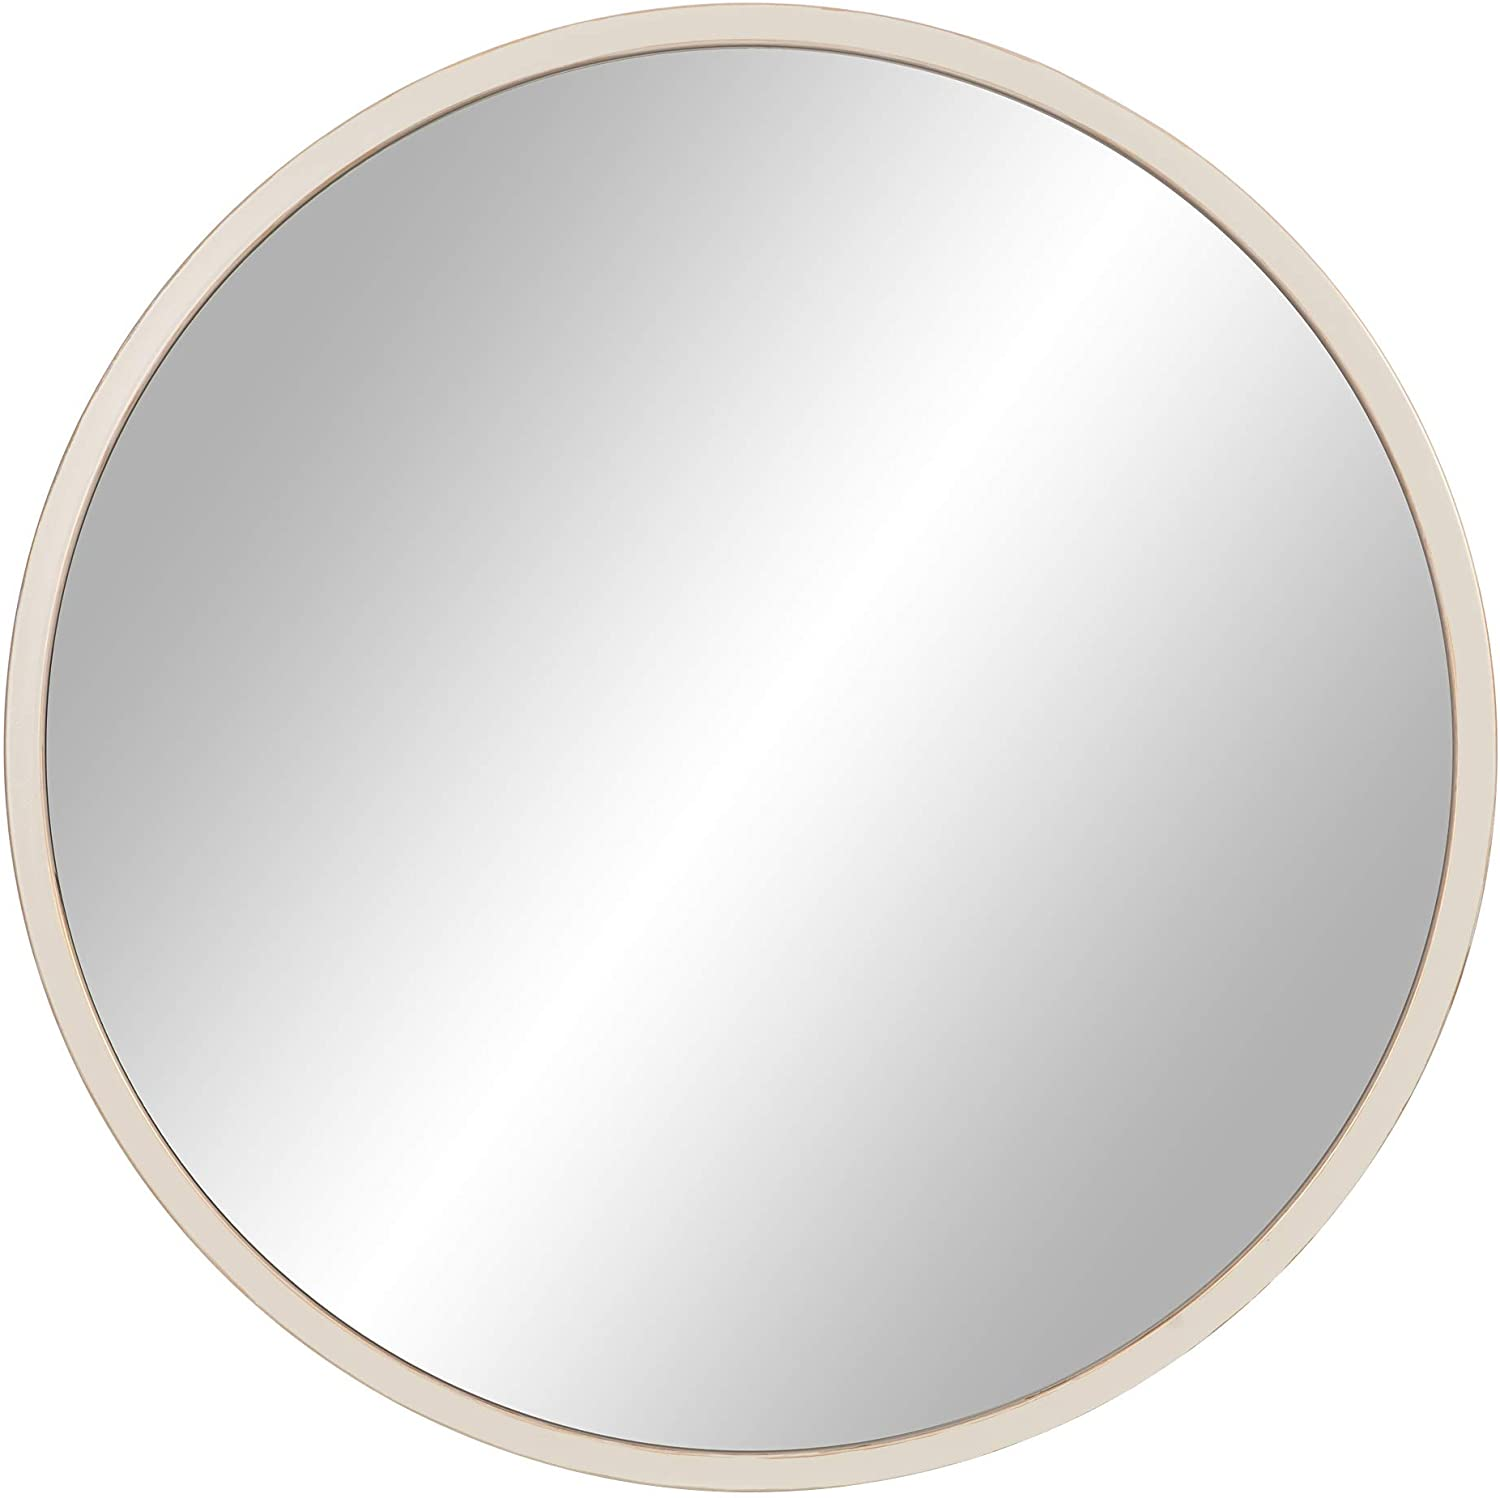 "30"" Distressed White Metal Framed Round Wall Mirror"